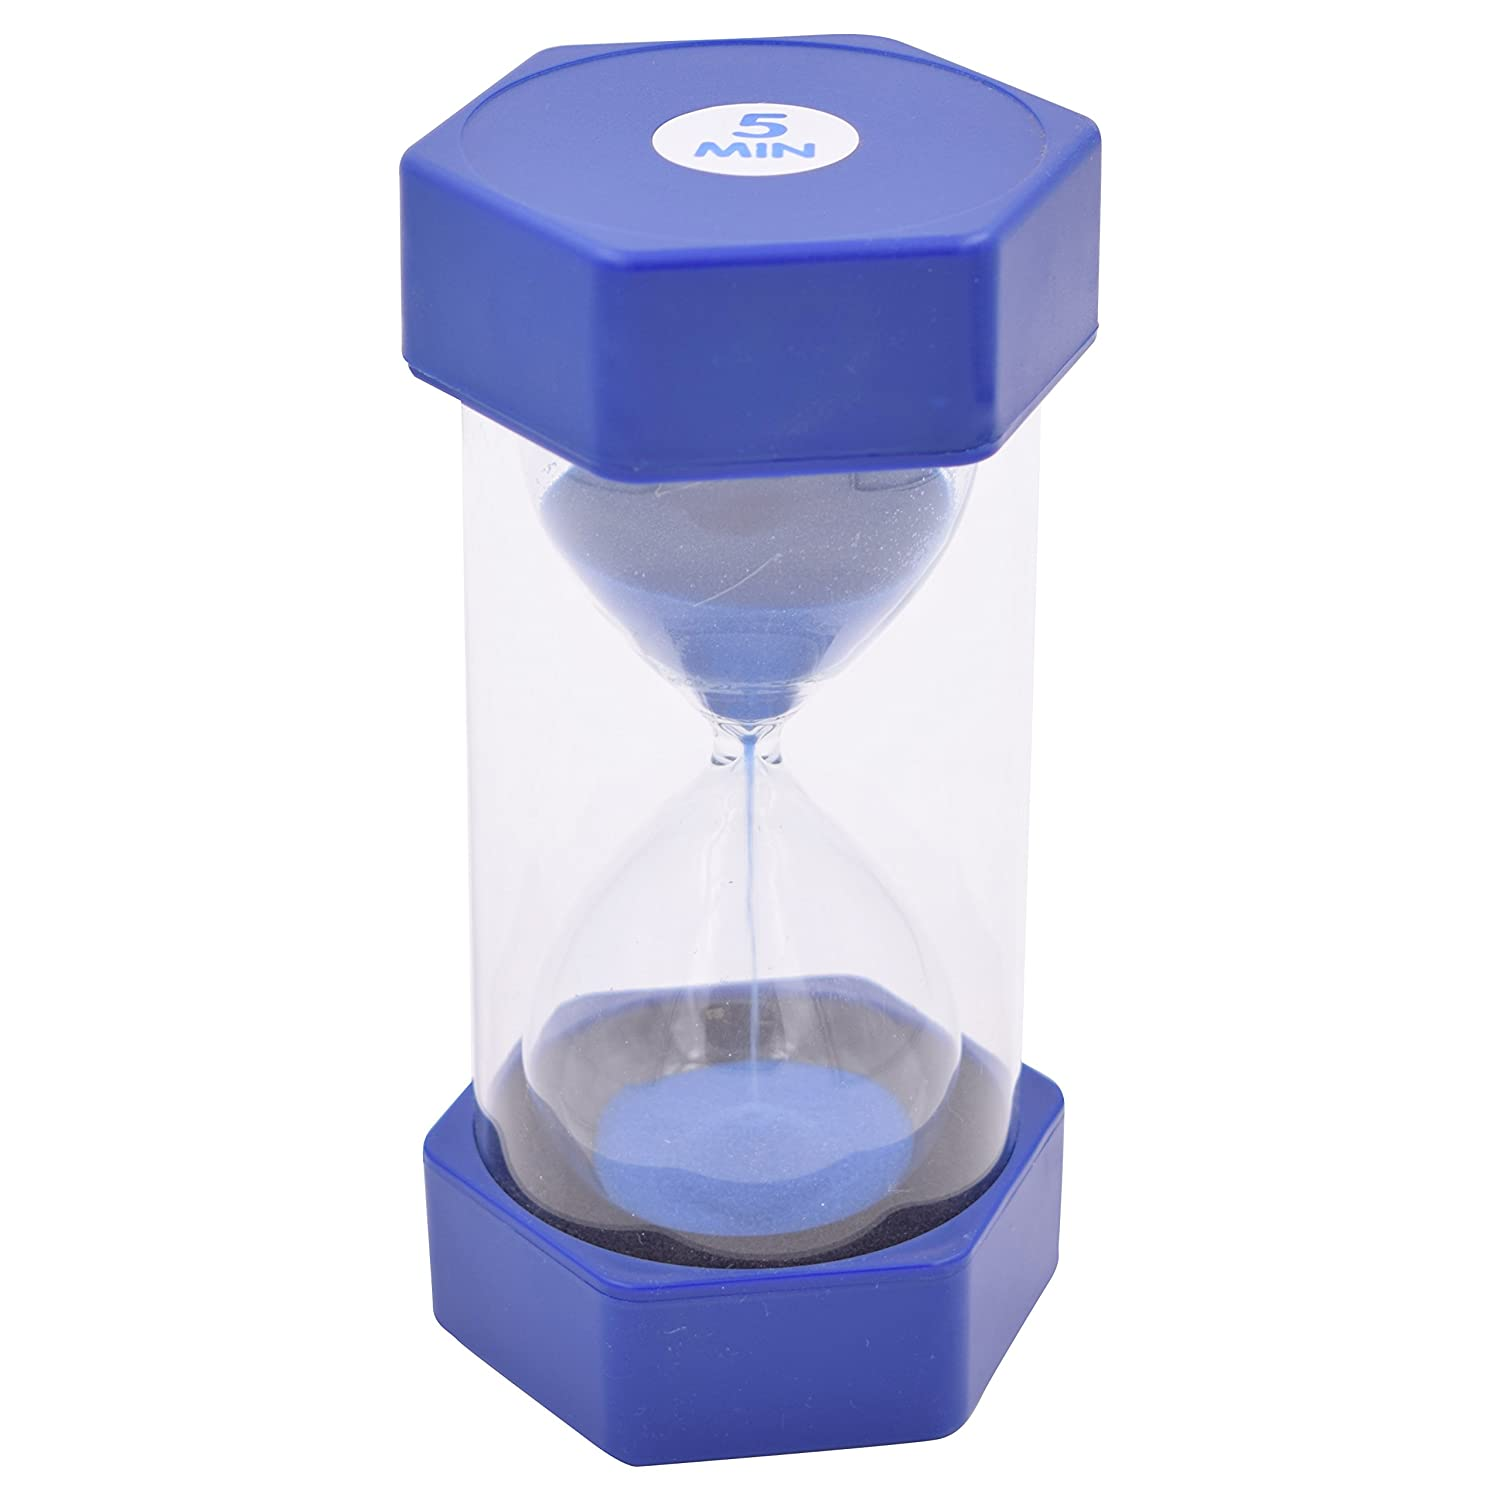 Perfect for Teachers Classrooms Home Or Office Decor 5 Minutes Large Sand Timer in Safecase Height 16cm